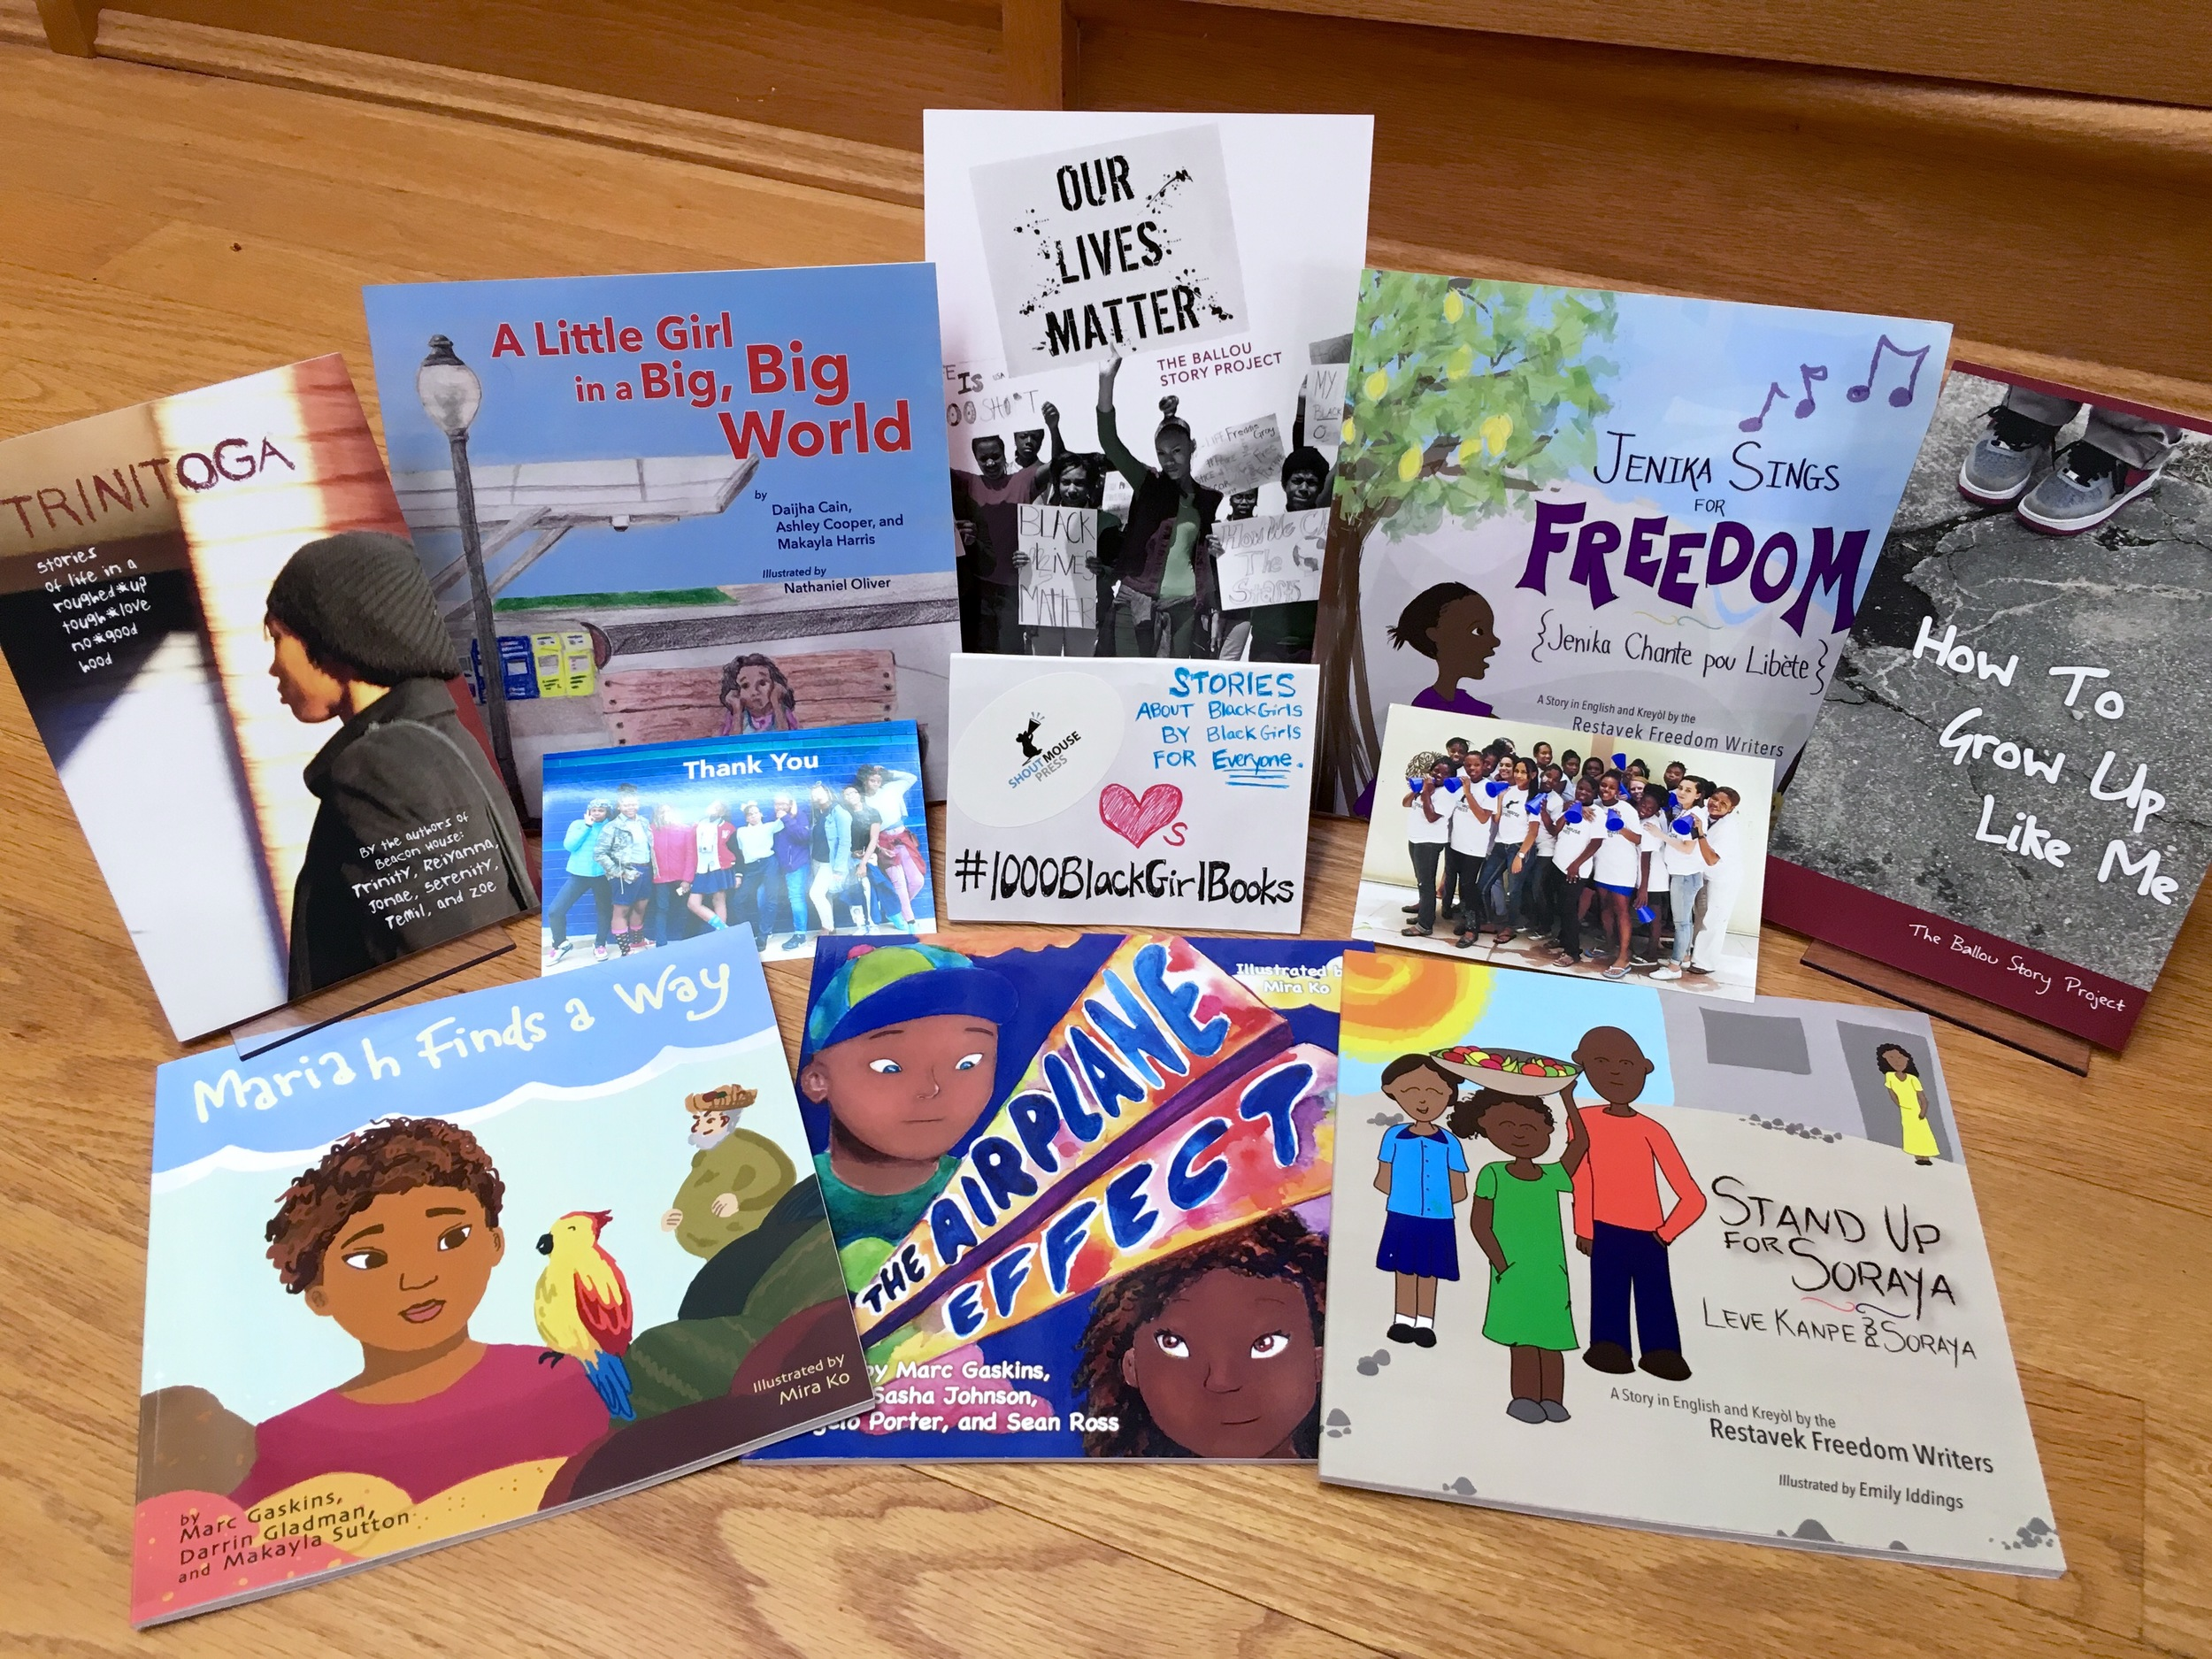 All these black girl books were written by black girl authors